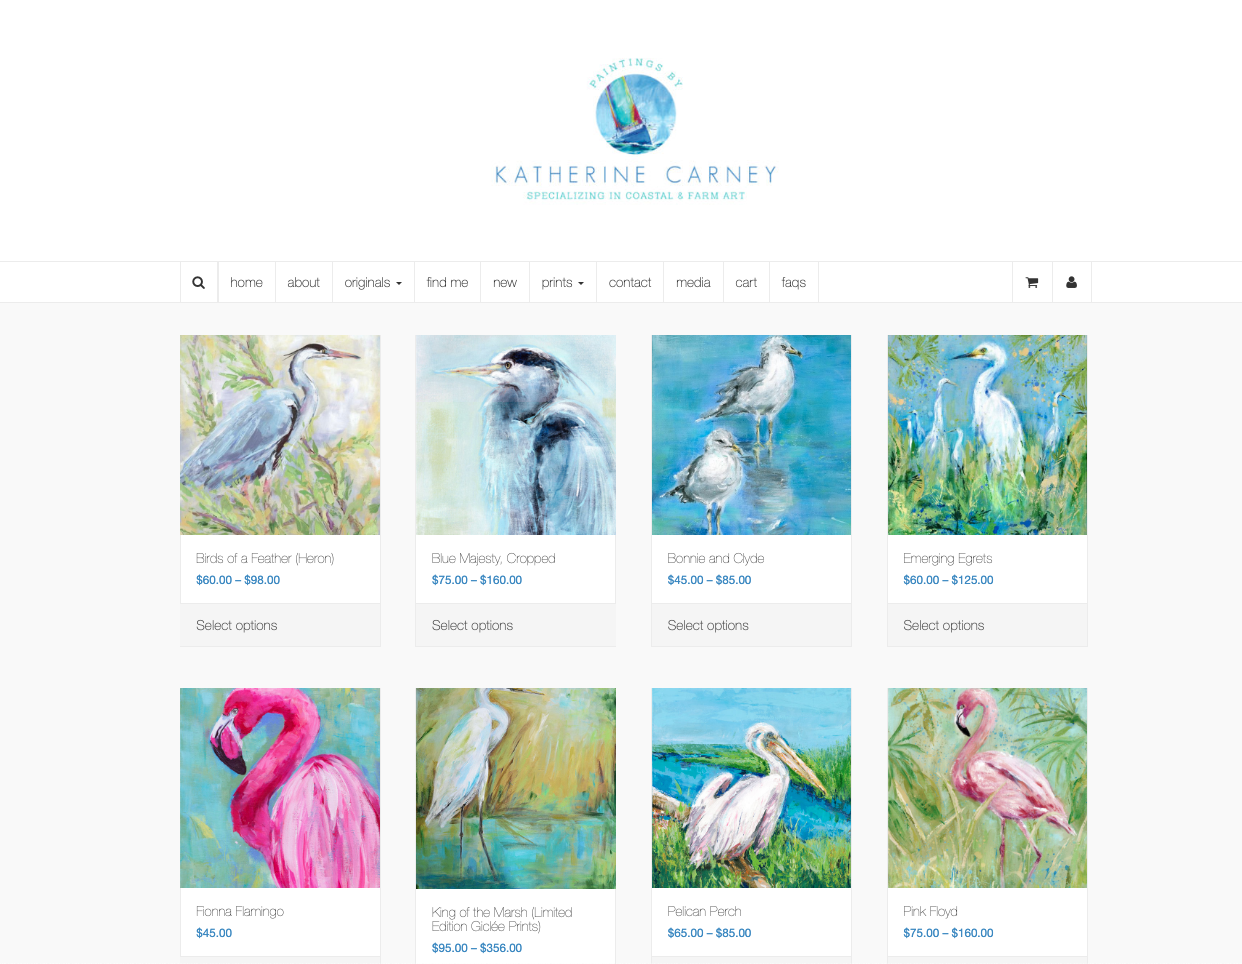 Katherine Carney Product Page